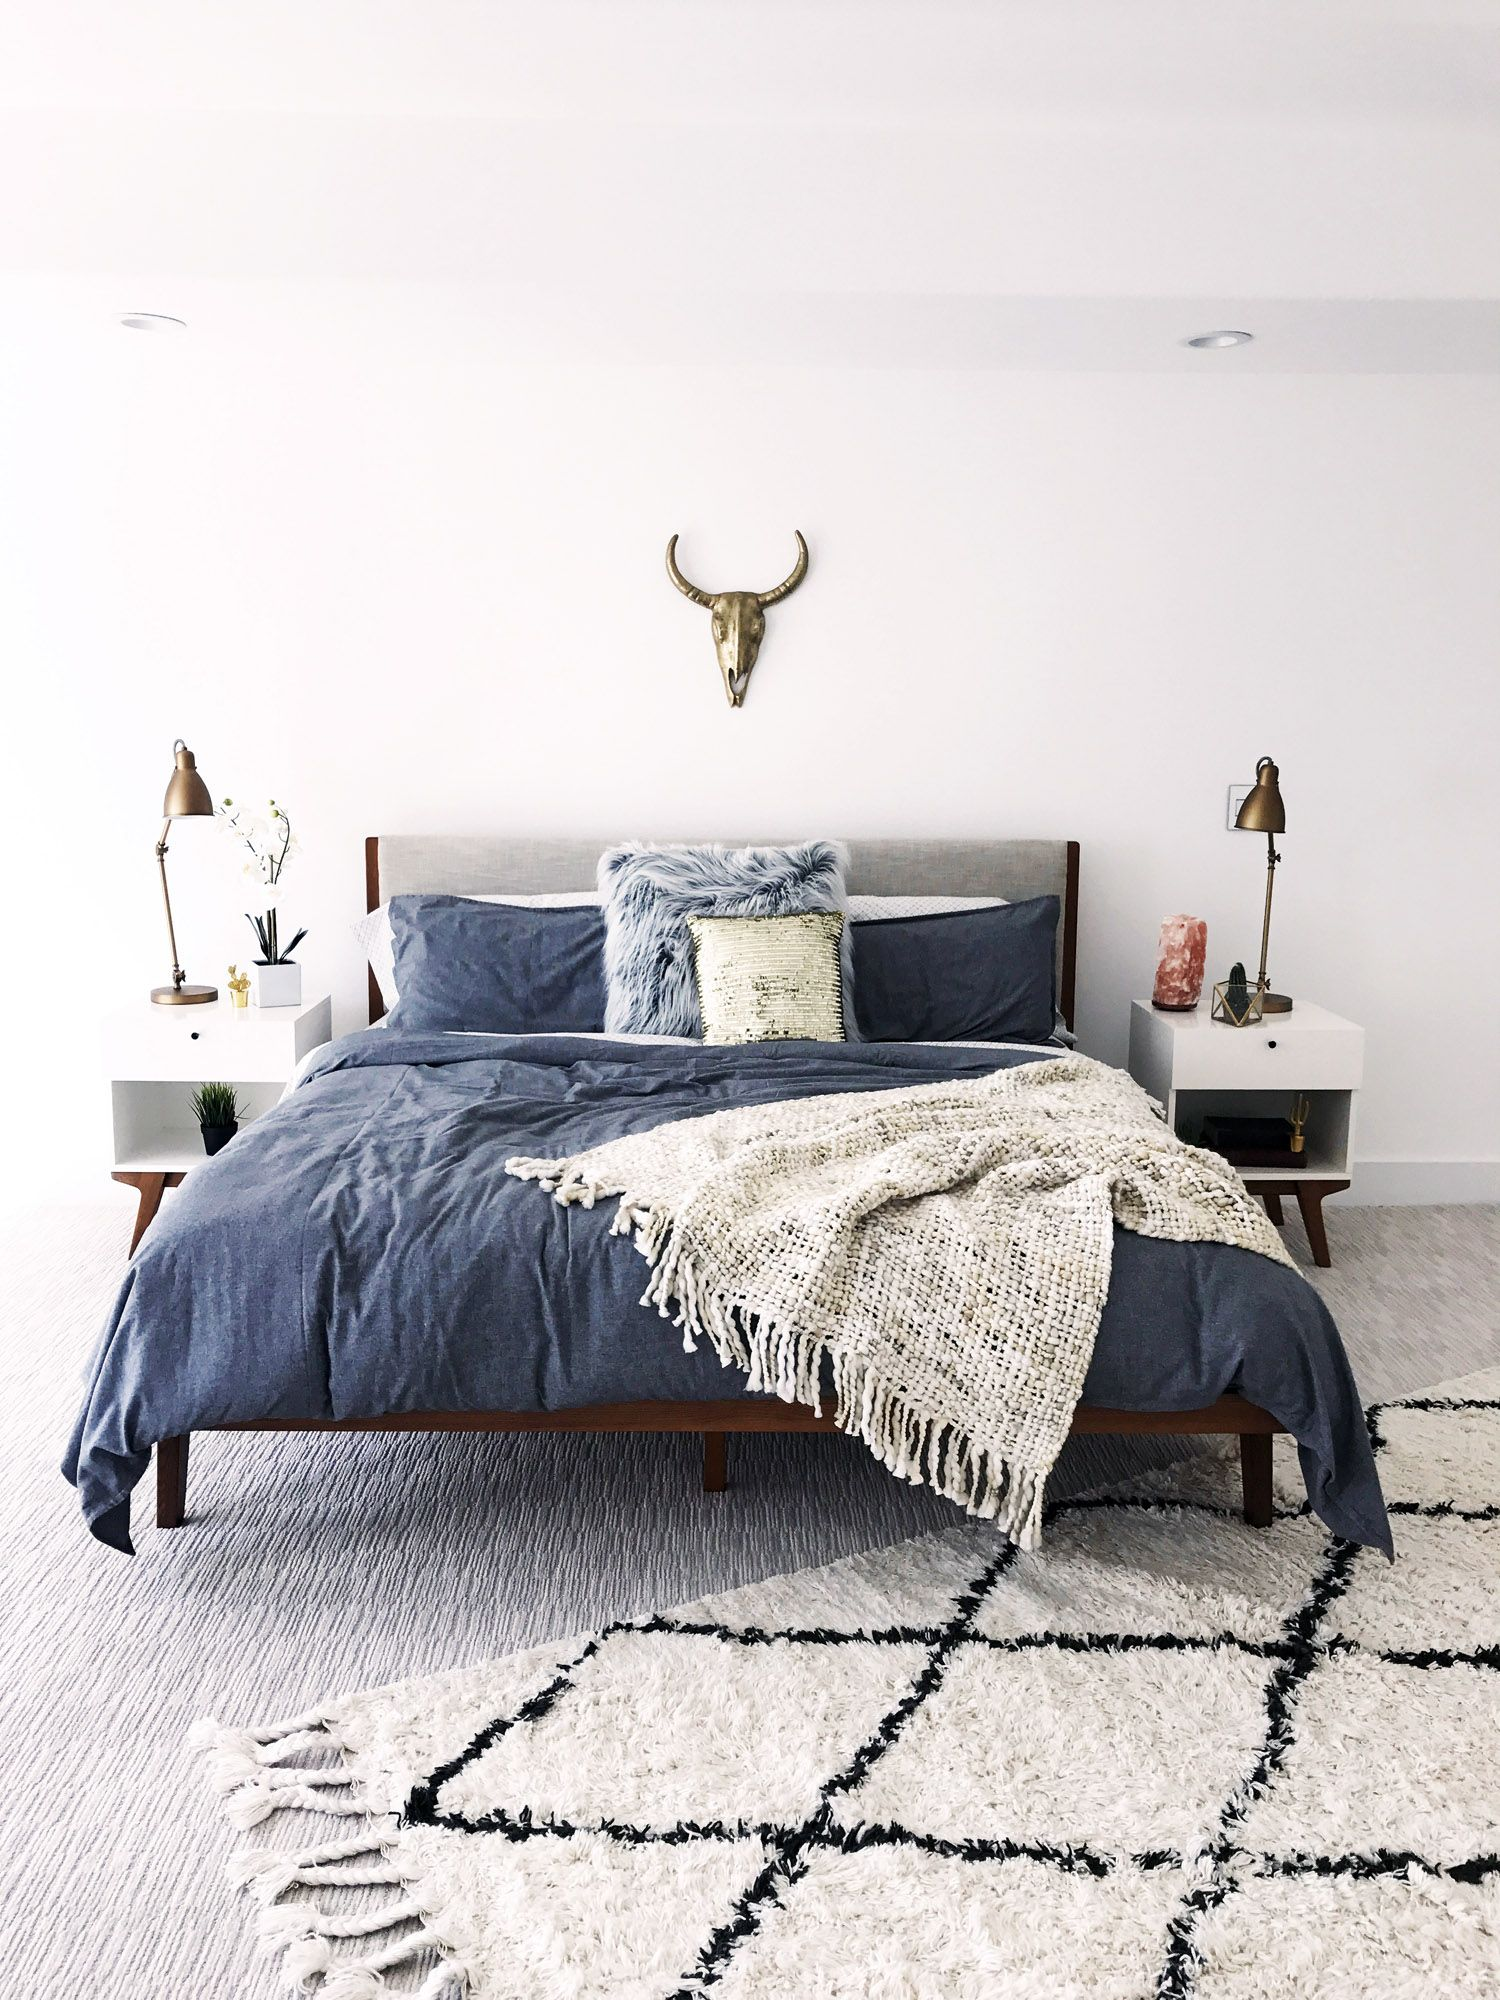 mid- century bedroom inspiration | before + after - a modern house